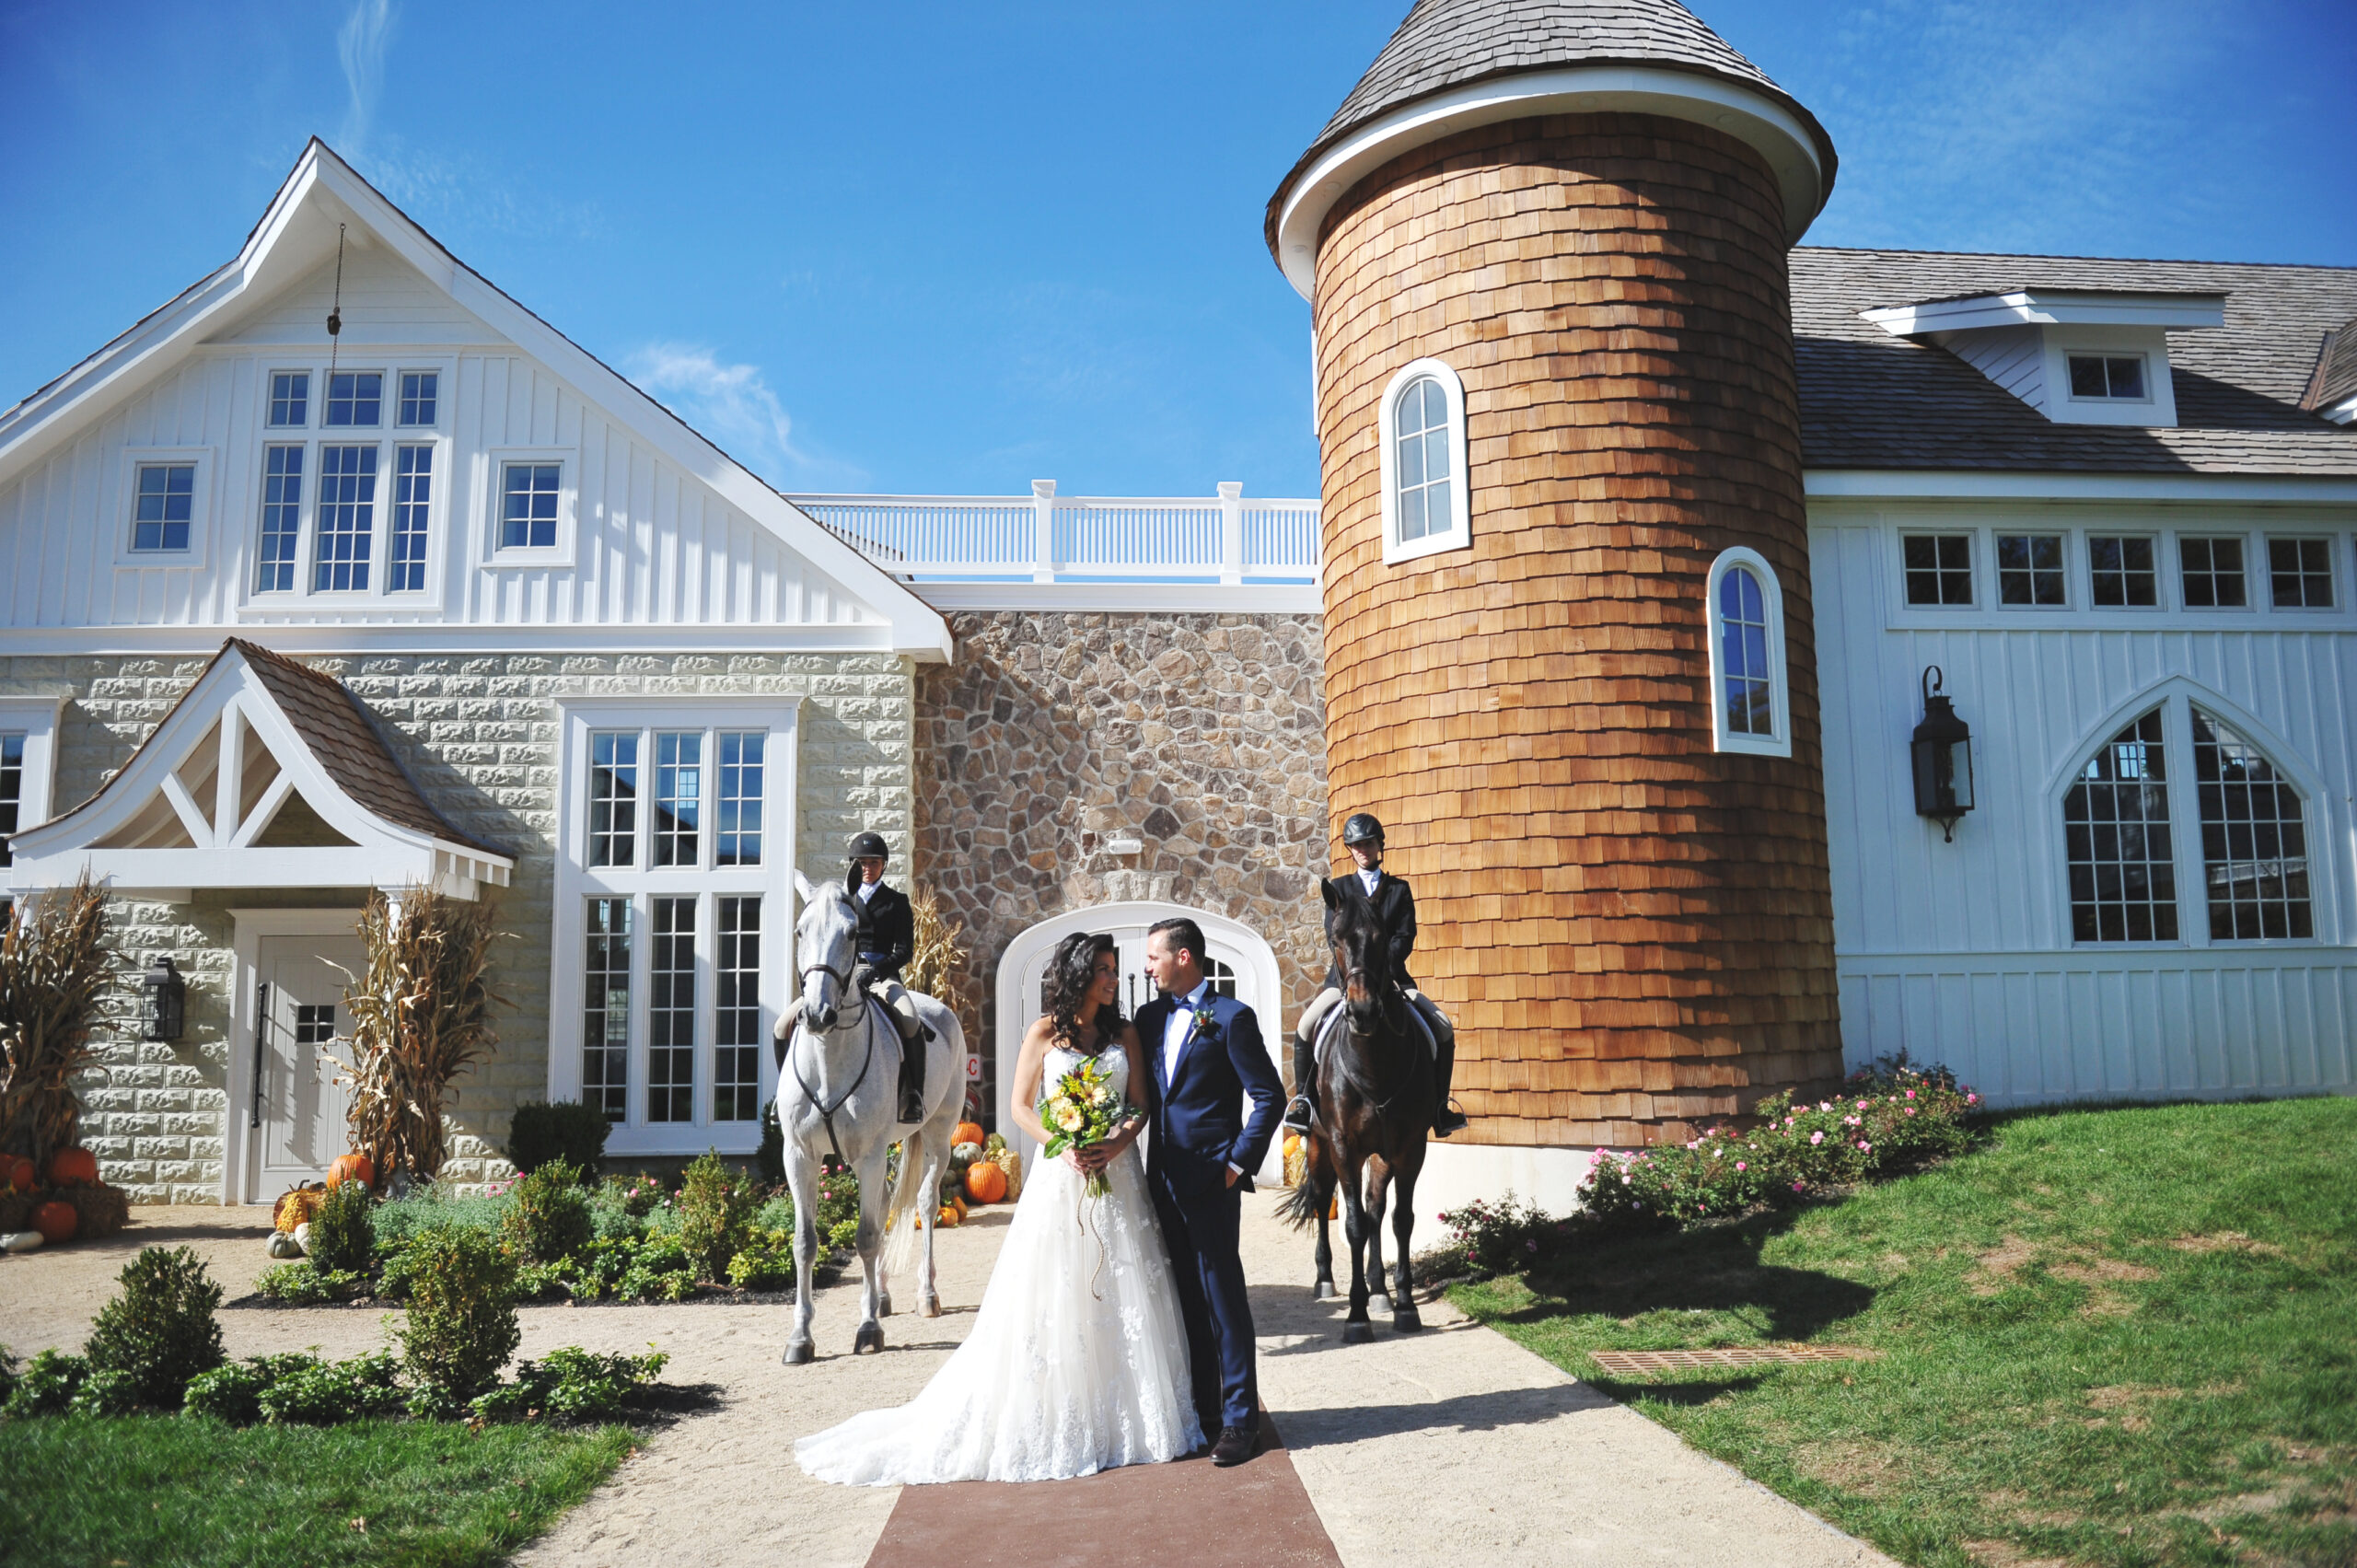 small wedding venues for 50 guests near me